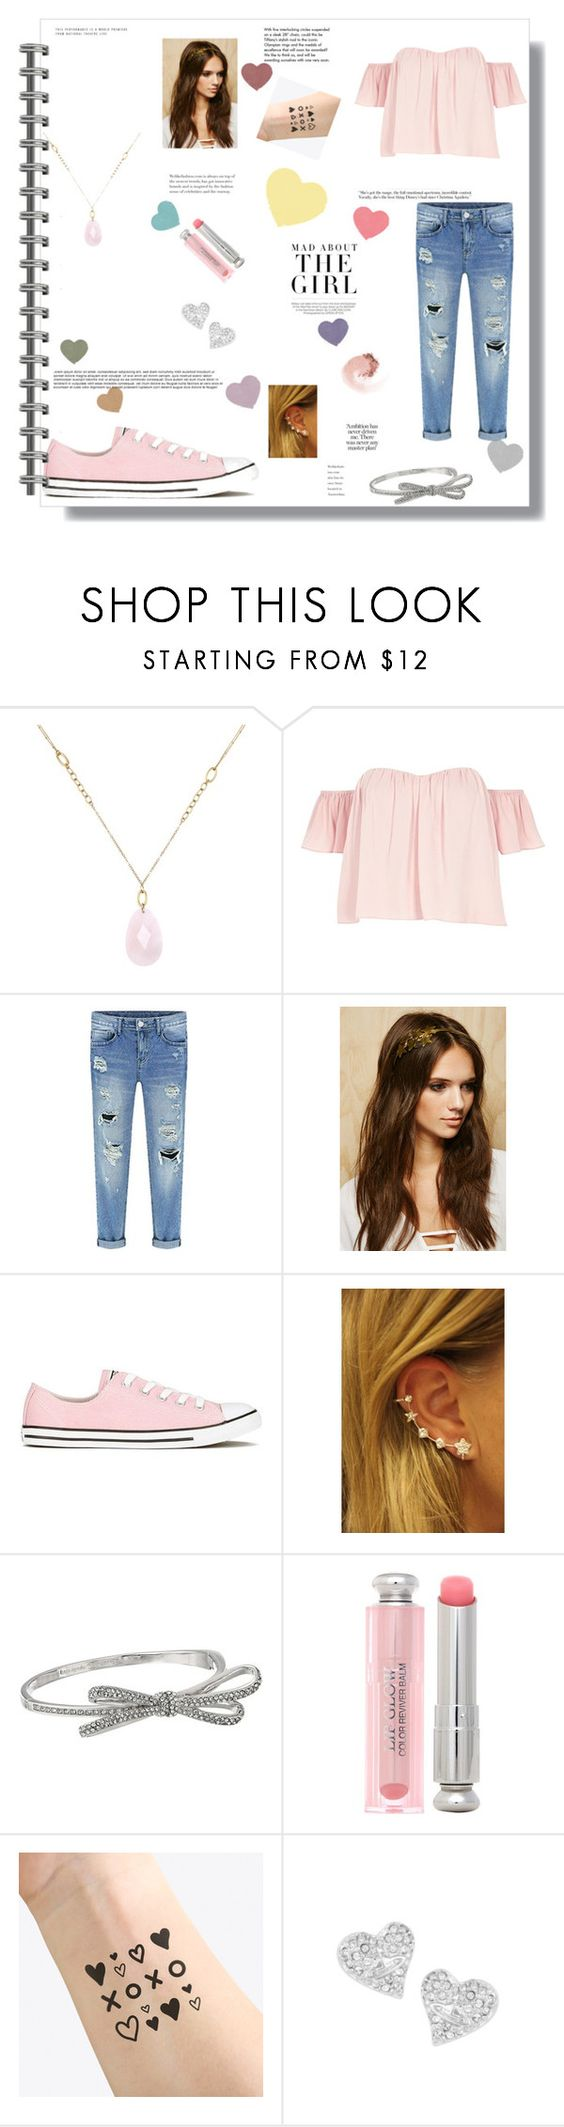 """""""Sweetly in Love"""" by christagnes ❤ liked on Polyvore featuring White House Black Market, River Island, Forever 21, Converse, Kate Spade, Christian Dior, NAVUCKO, Vivienne Westwood, NARS Cosmetics and Kershaw"""